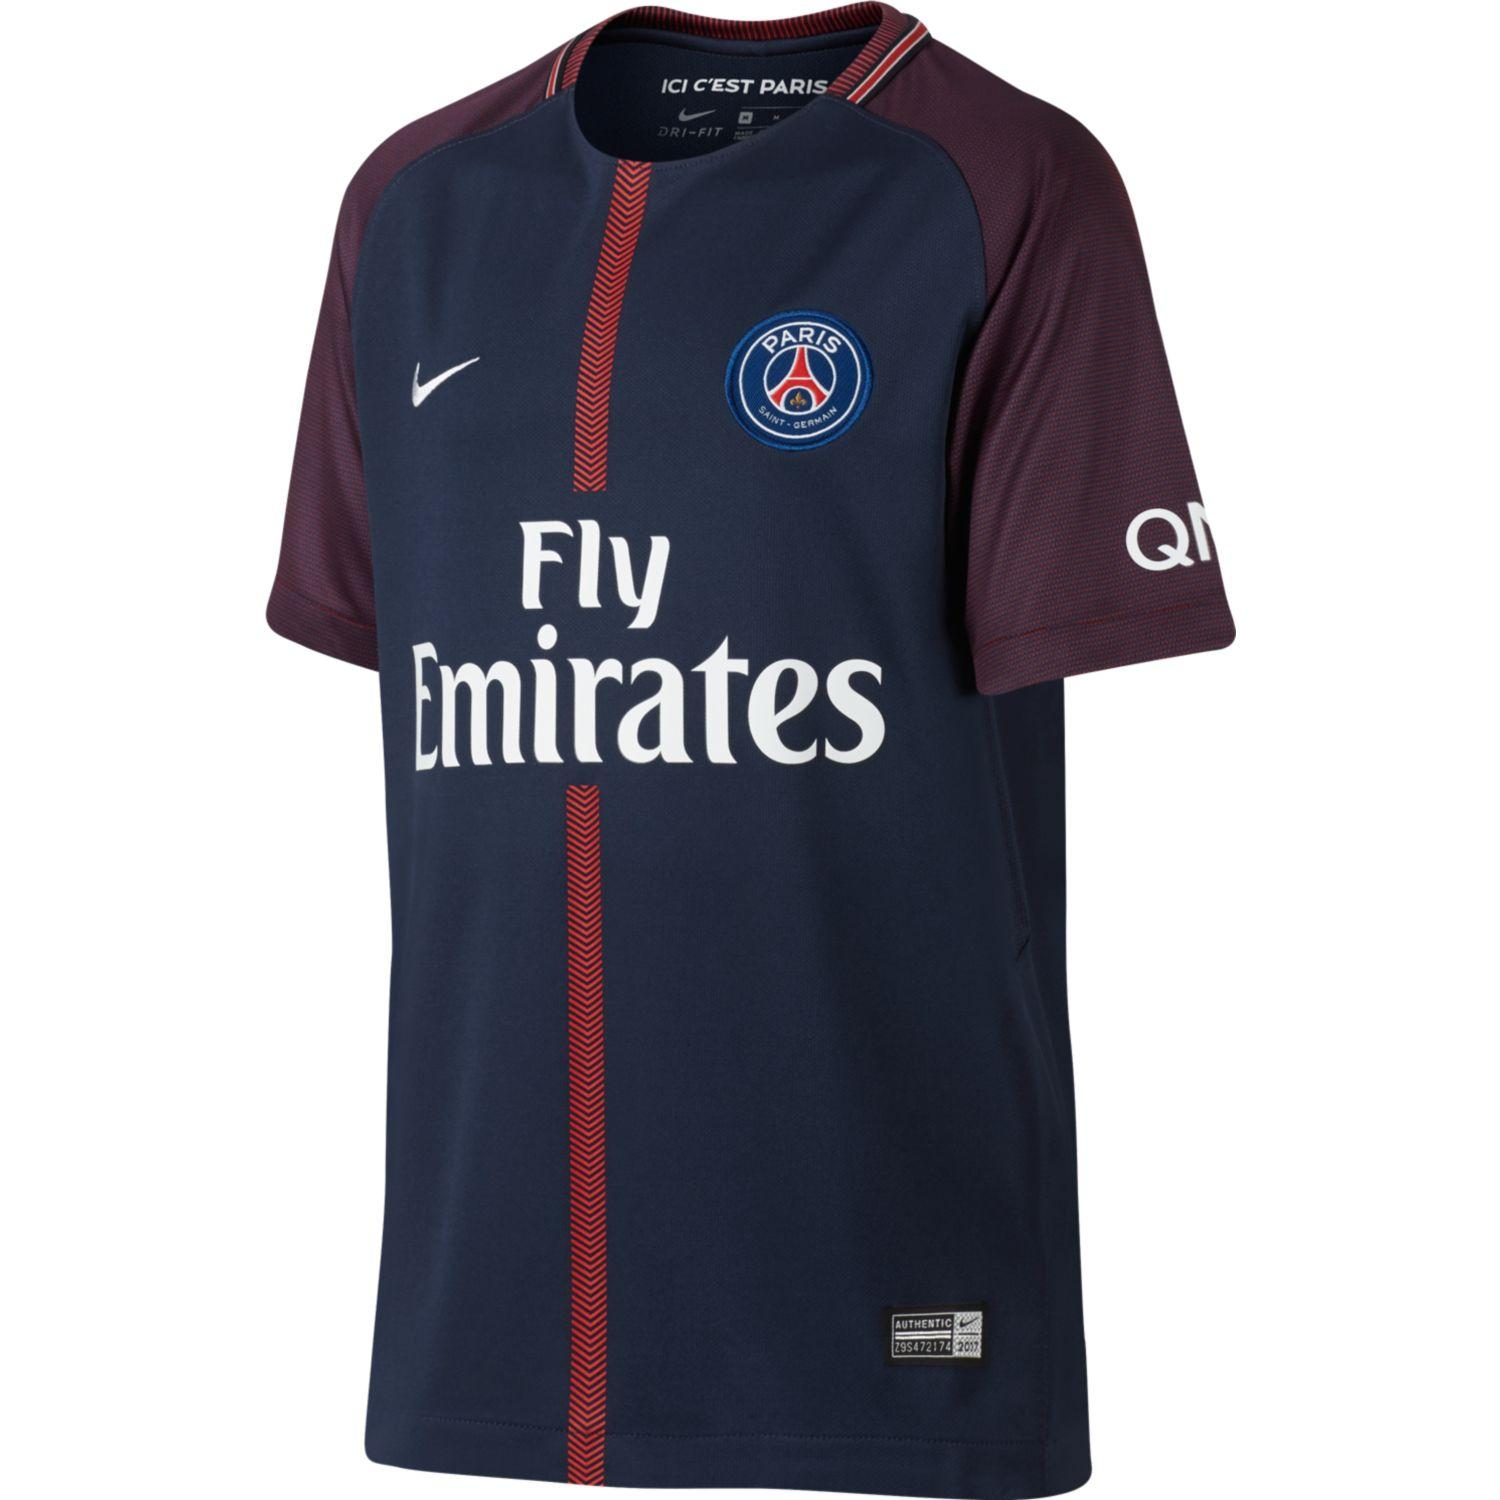 Nike Maillot De Match Home Paris Saint Germain Enfant  17/18